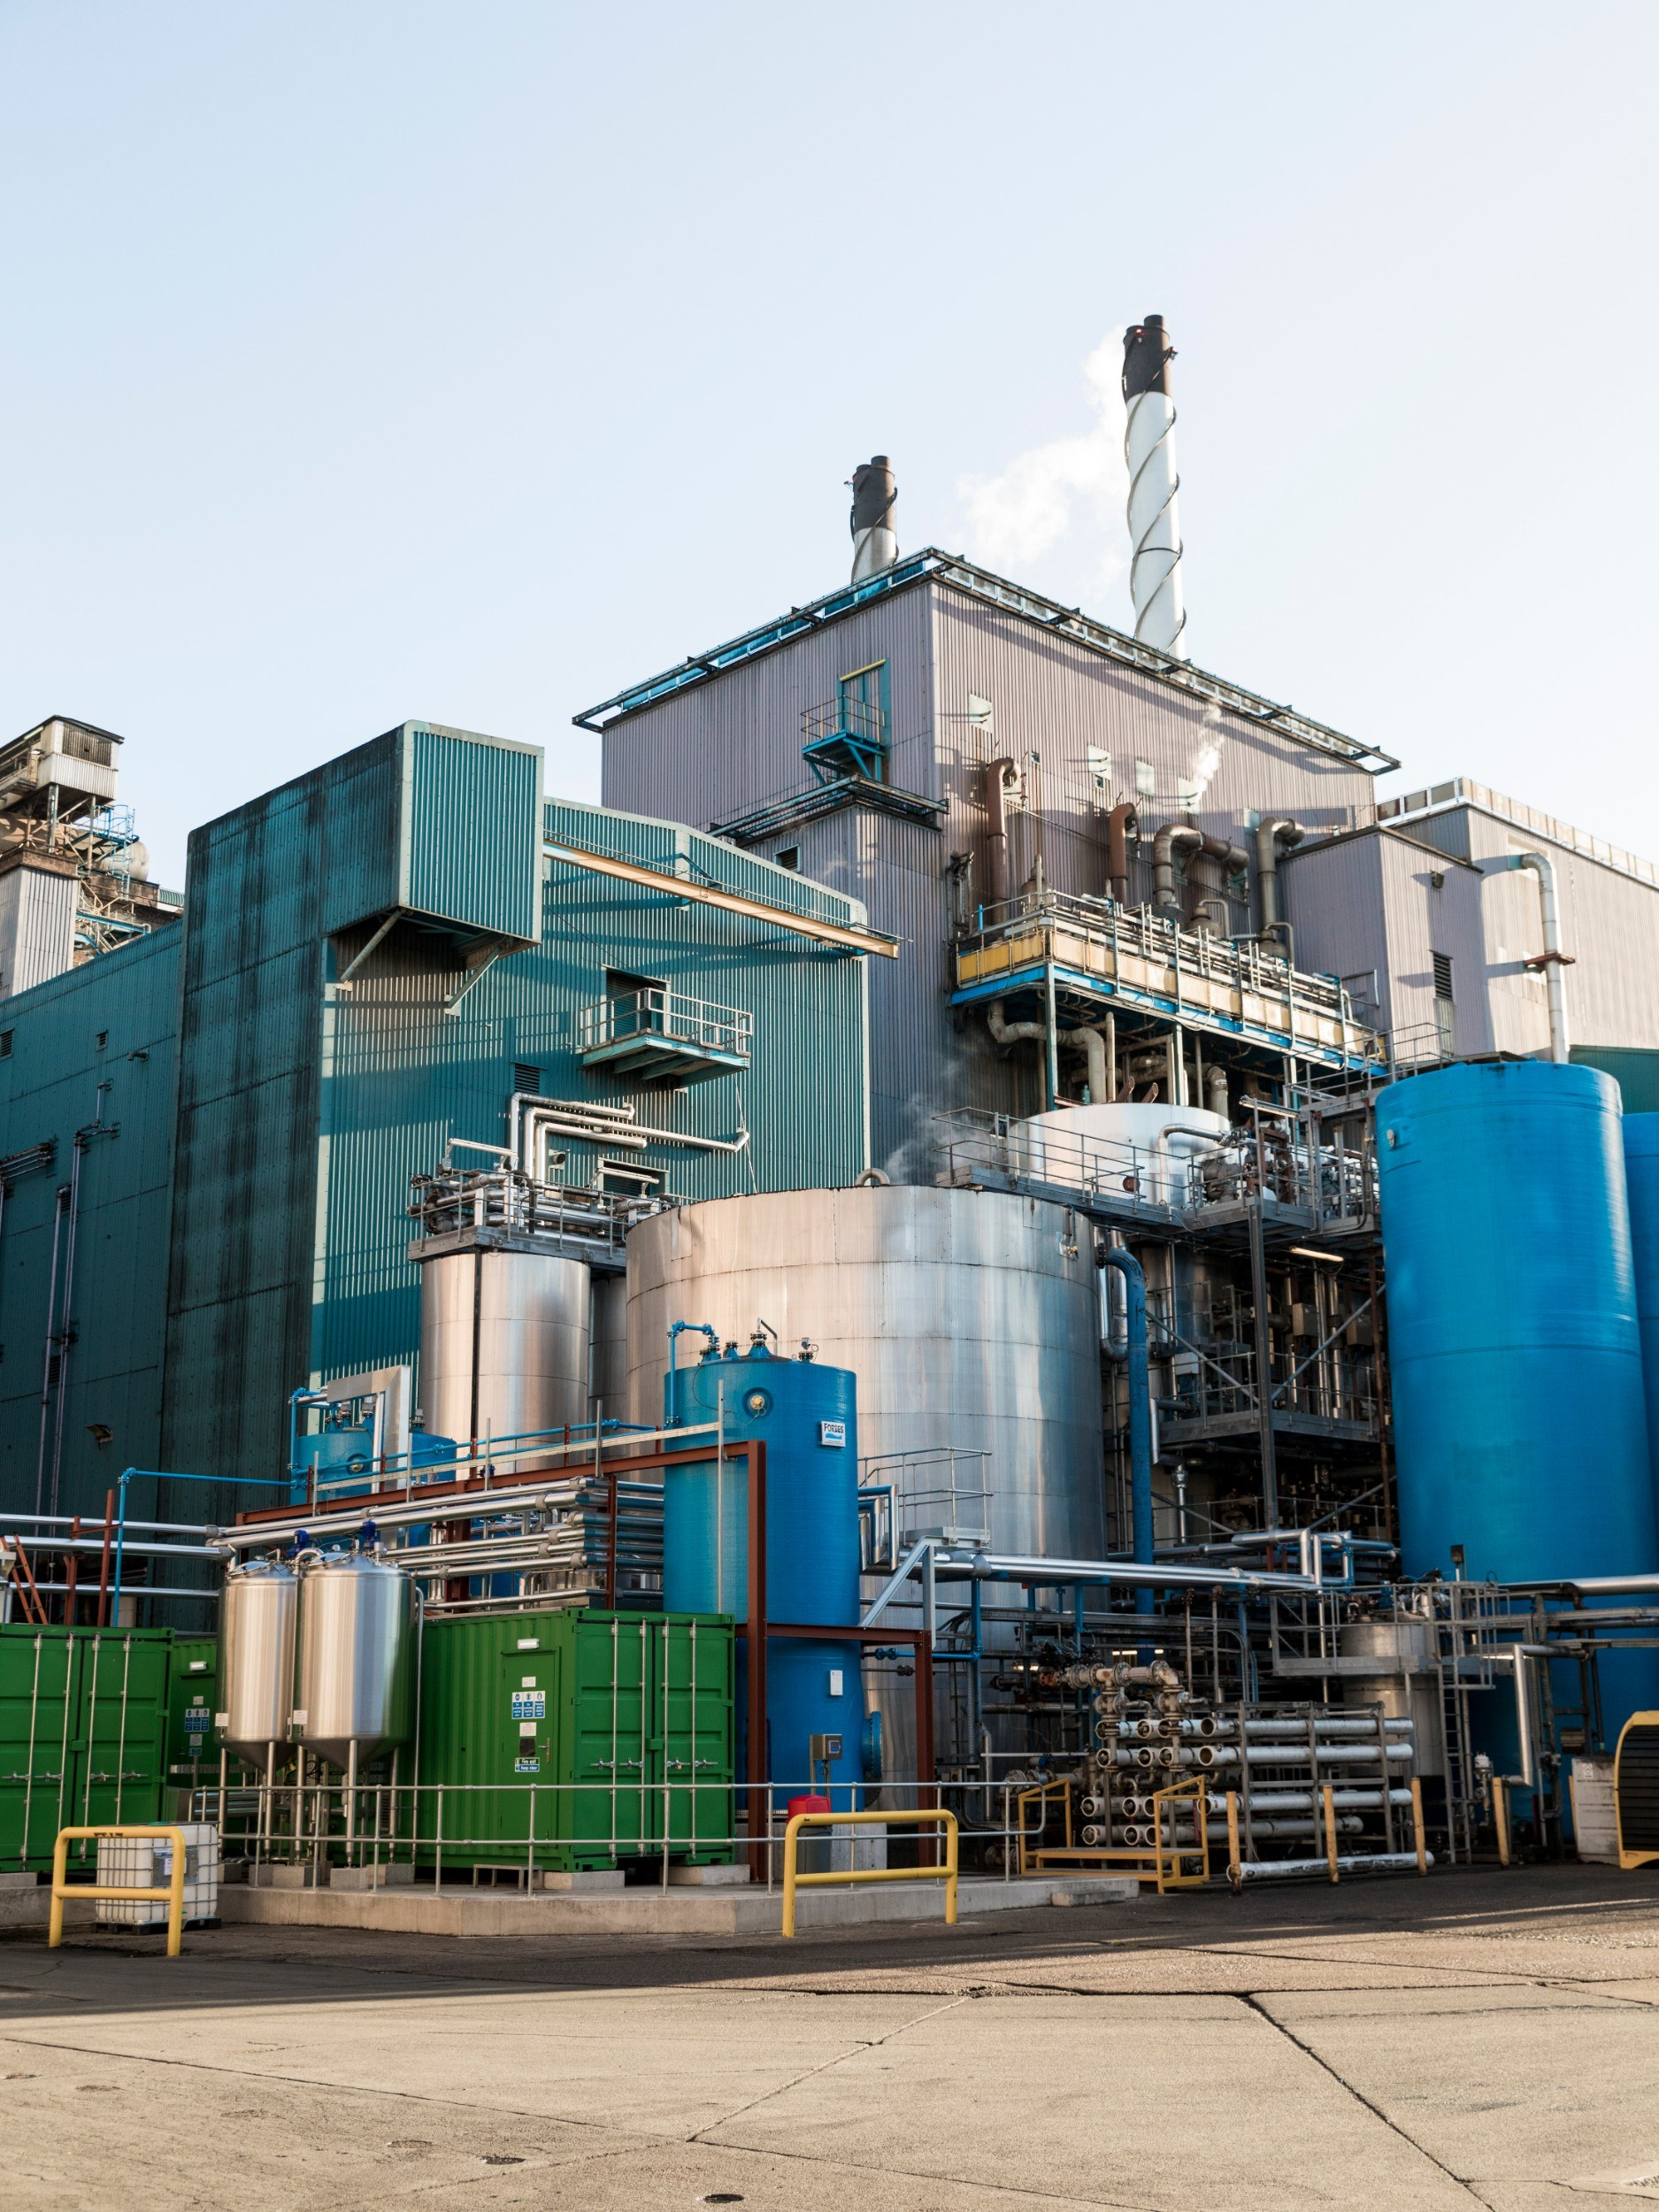 Exterior of a building that looks like a factory, with chimneys and cylindrical structures